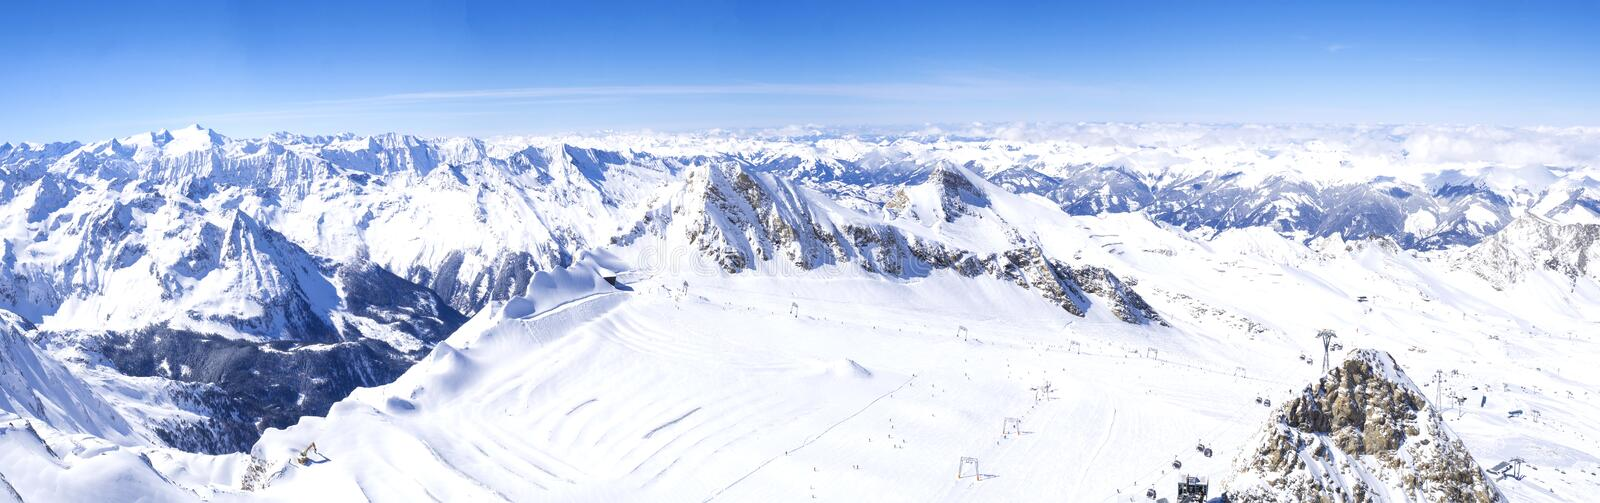 Panoramic landscape Winter view from the top of Kitzsteinhorn mountain on snow covered slopes, blue sky. Kaprun ski. Resort, National Park Hohe Tauern, Austrian stock images